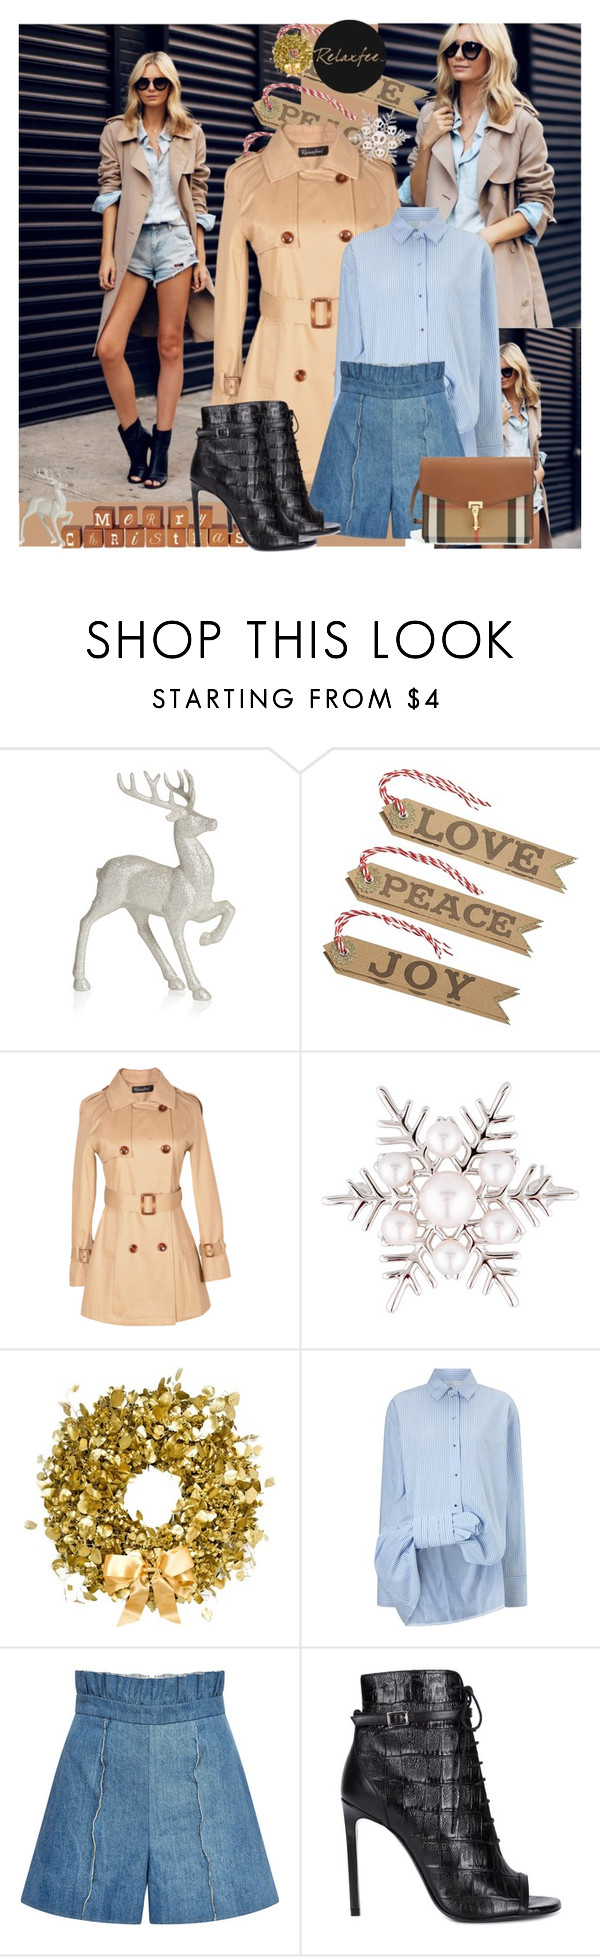 """""""FEATURED OUTFIT BY RELAXFEEL"""" by relaxfeel on Polyvore featuring Disney, Relaxfeel, Mikimoto, Philippa Craddock, Victoria, Victoria Beckham, Kalmanovich, Yves Saint Laurent and Burberry"""